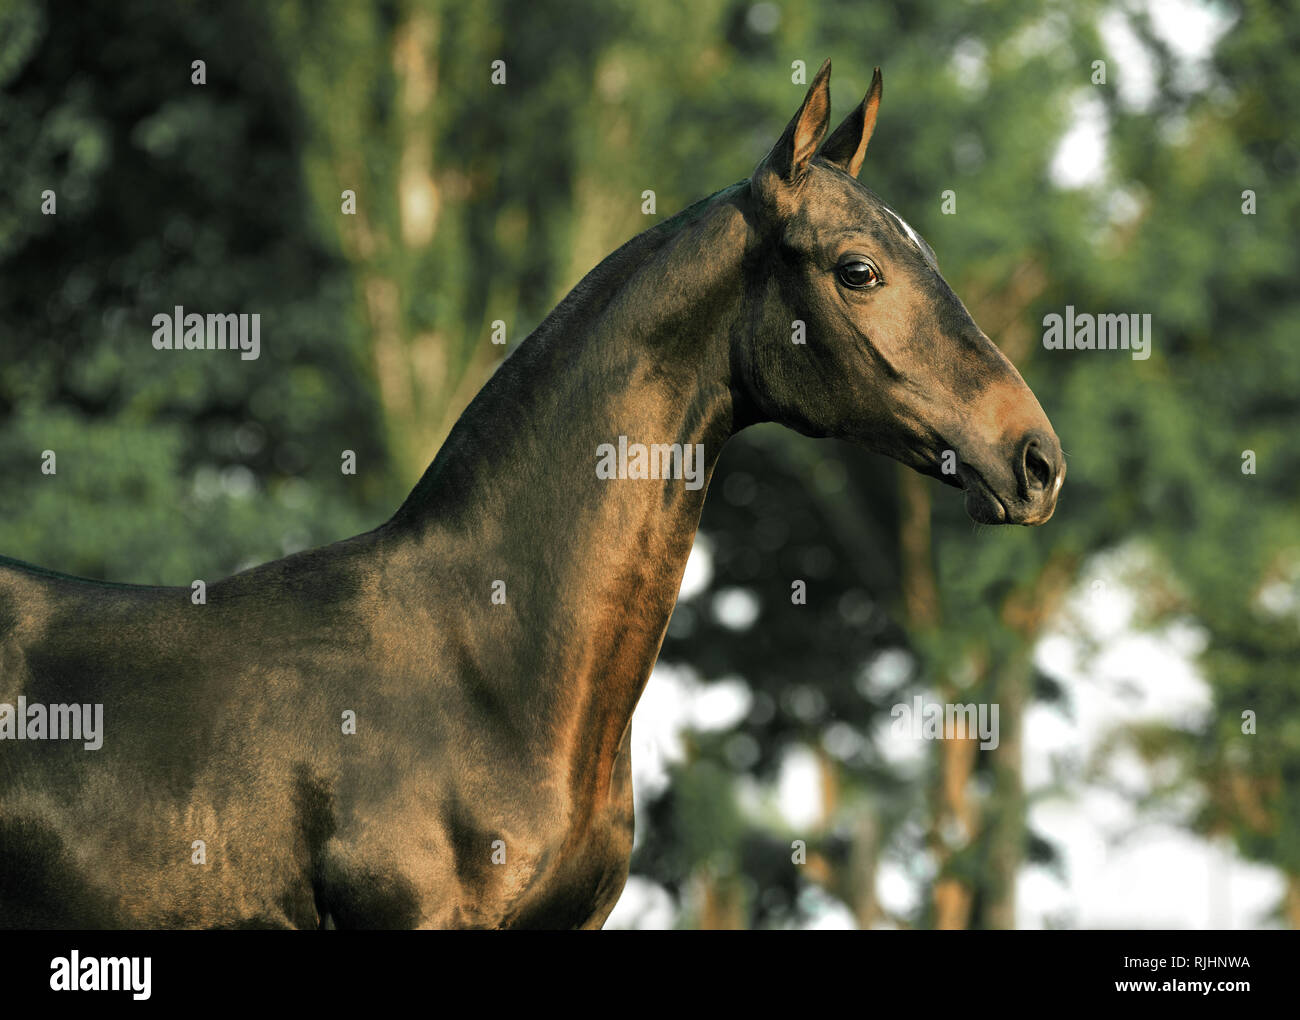 Surprised dark bay Akhal Teke horse beside trees in summer looking at the camera. Horizontal, side view, portrait. Stock Photo